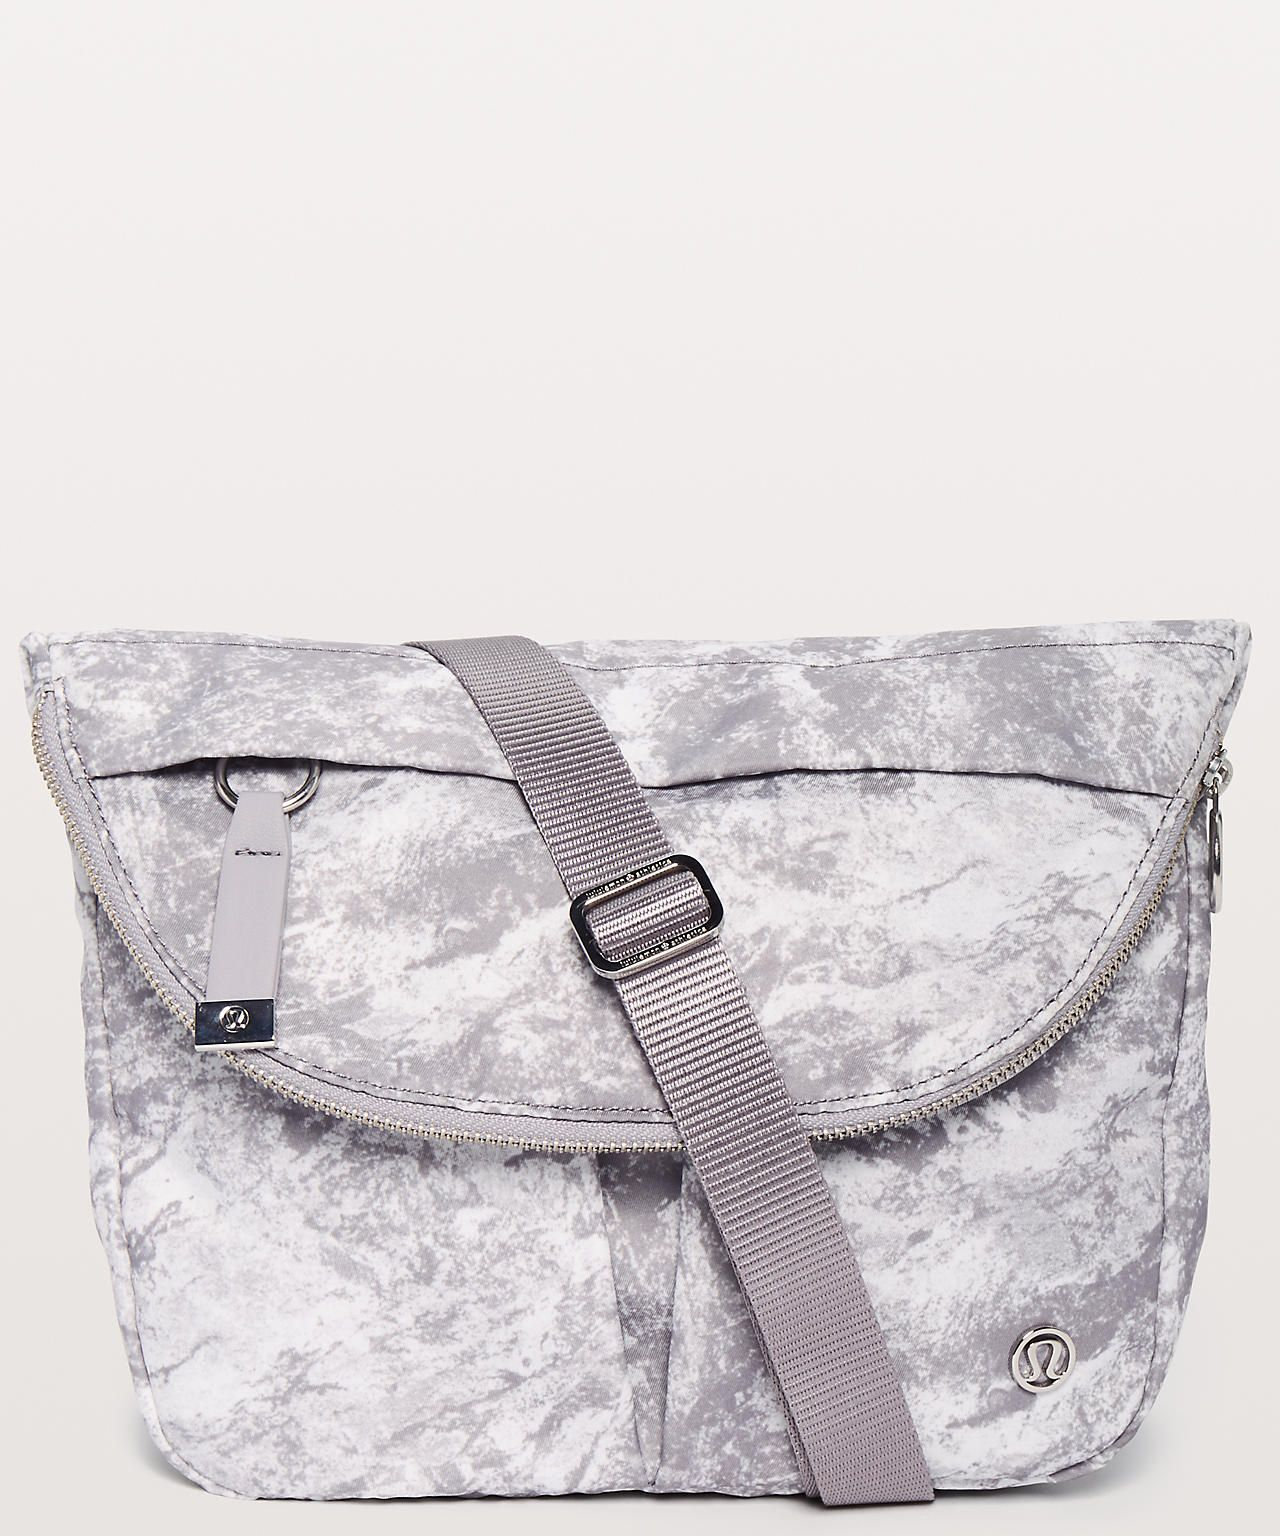 10503c5197 Lululemon All Night Festival Bag *5L | Bags, Bags, Bags | Bags, Bag ...